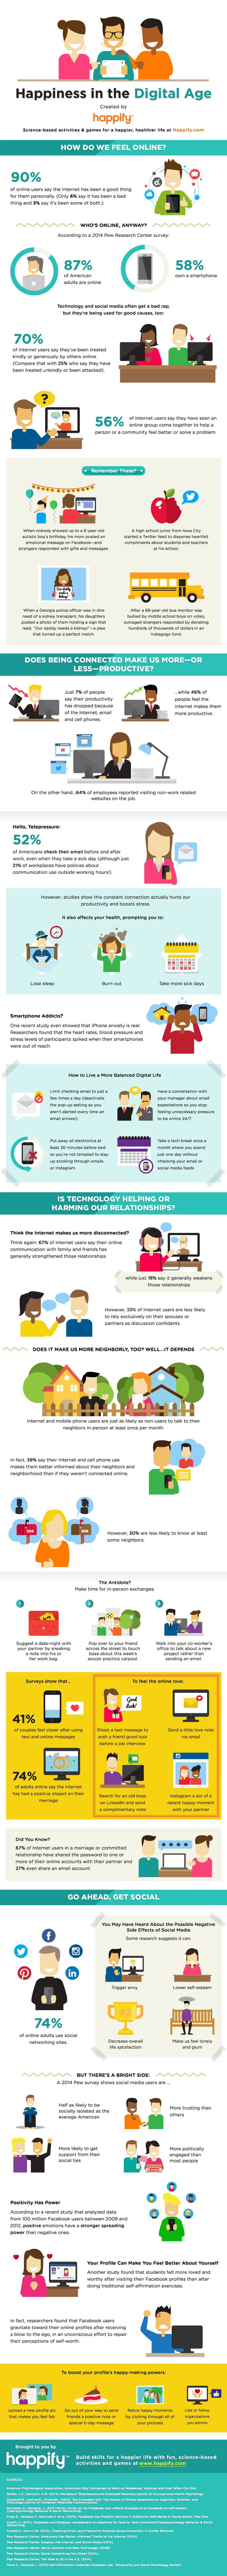 Check out this powerful #infographic on How Technology Impacts Our Happiness! #laughmore #stressless